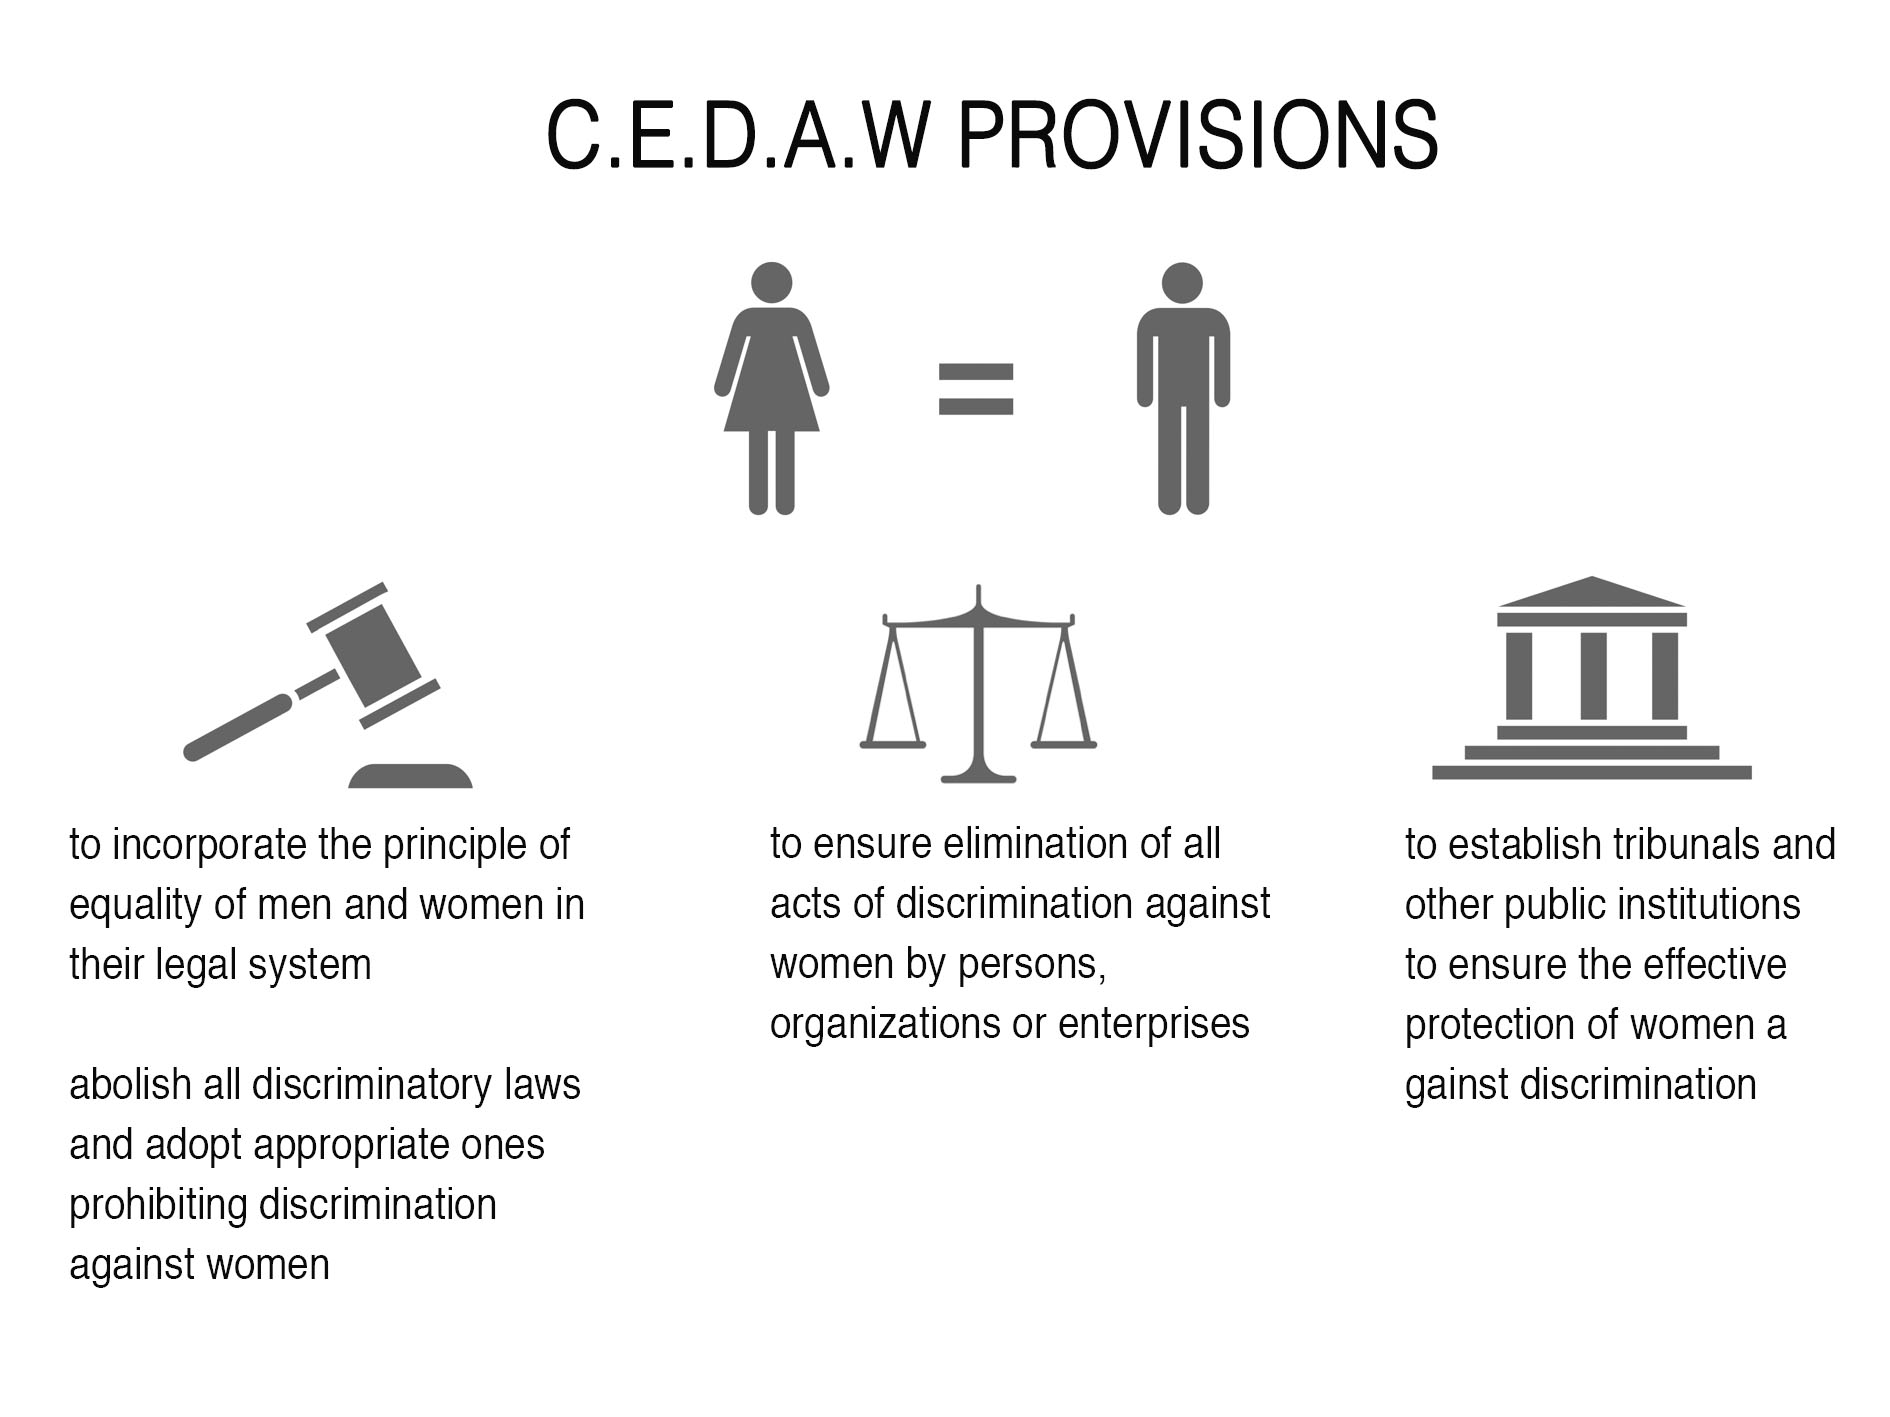 source: http://www.un.org/womenwatch/daw/cedaw/                       graphic by: Jacinta David Miller